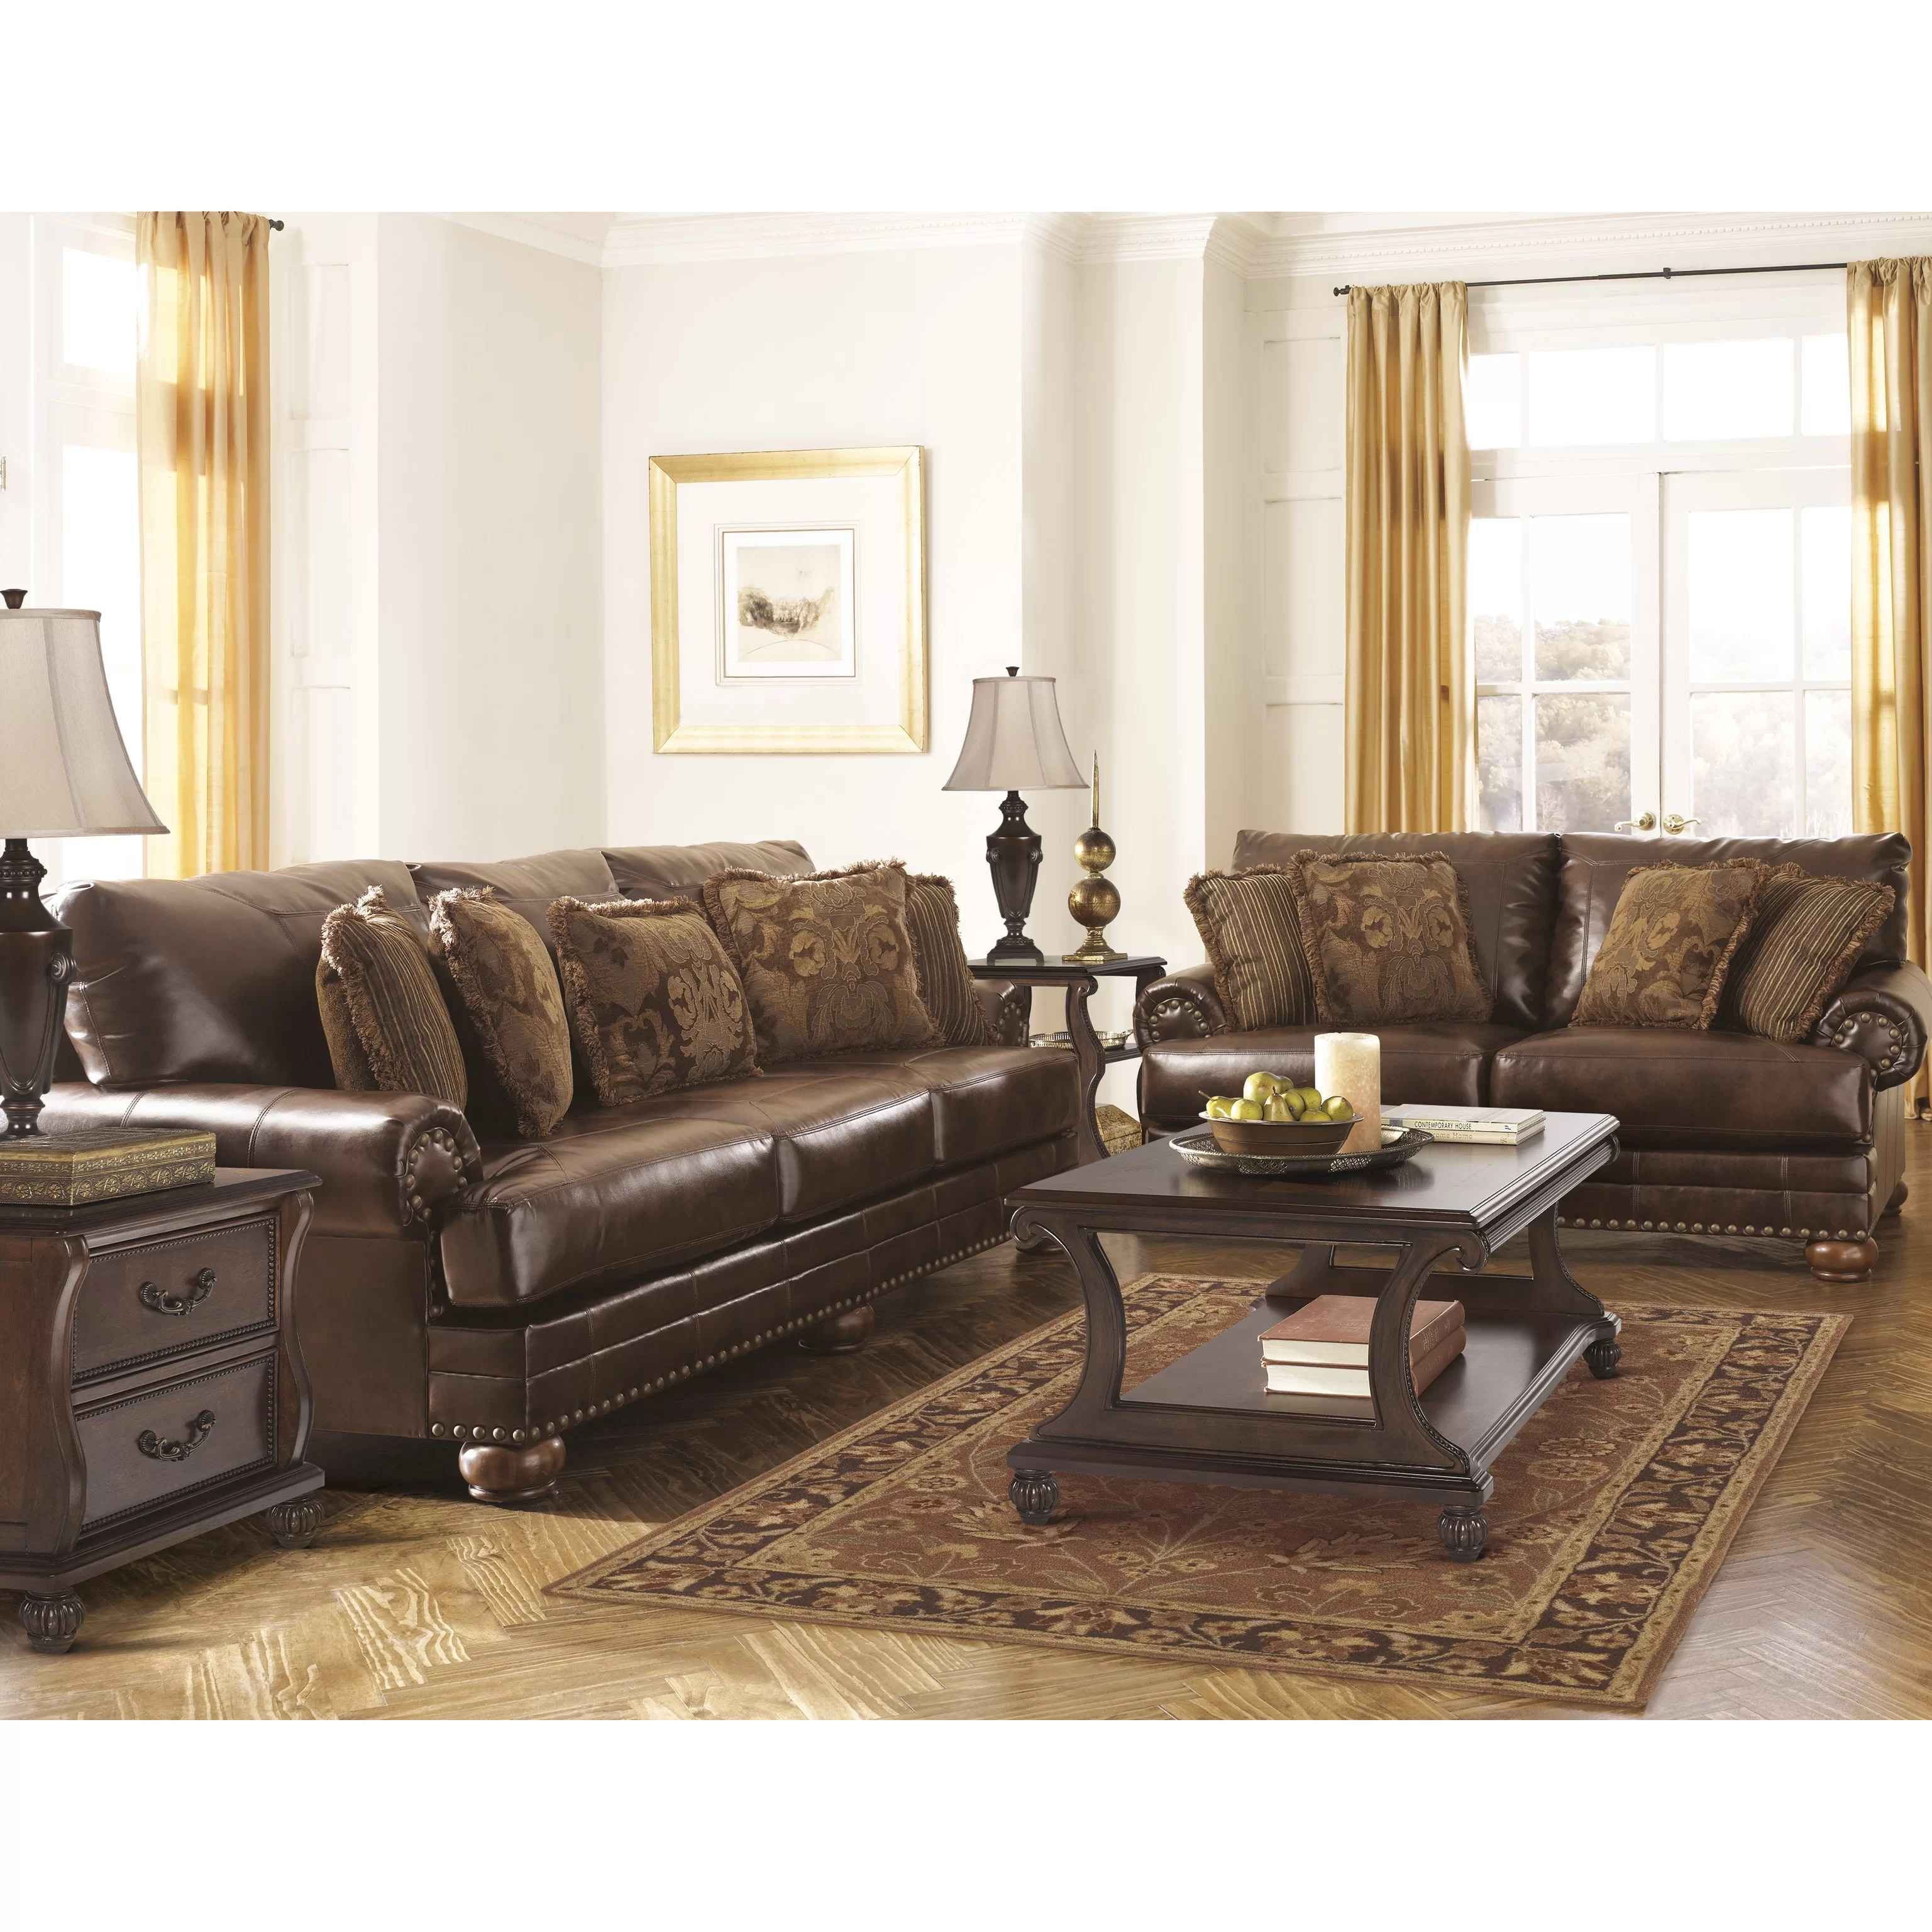 signature design by ashley harvest sleeper sofa mies sofascore leighton leather and reviews